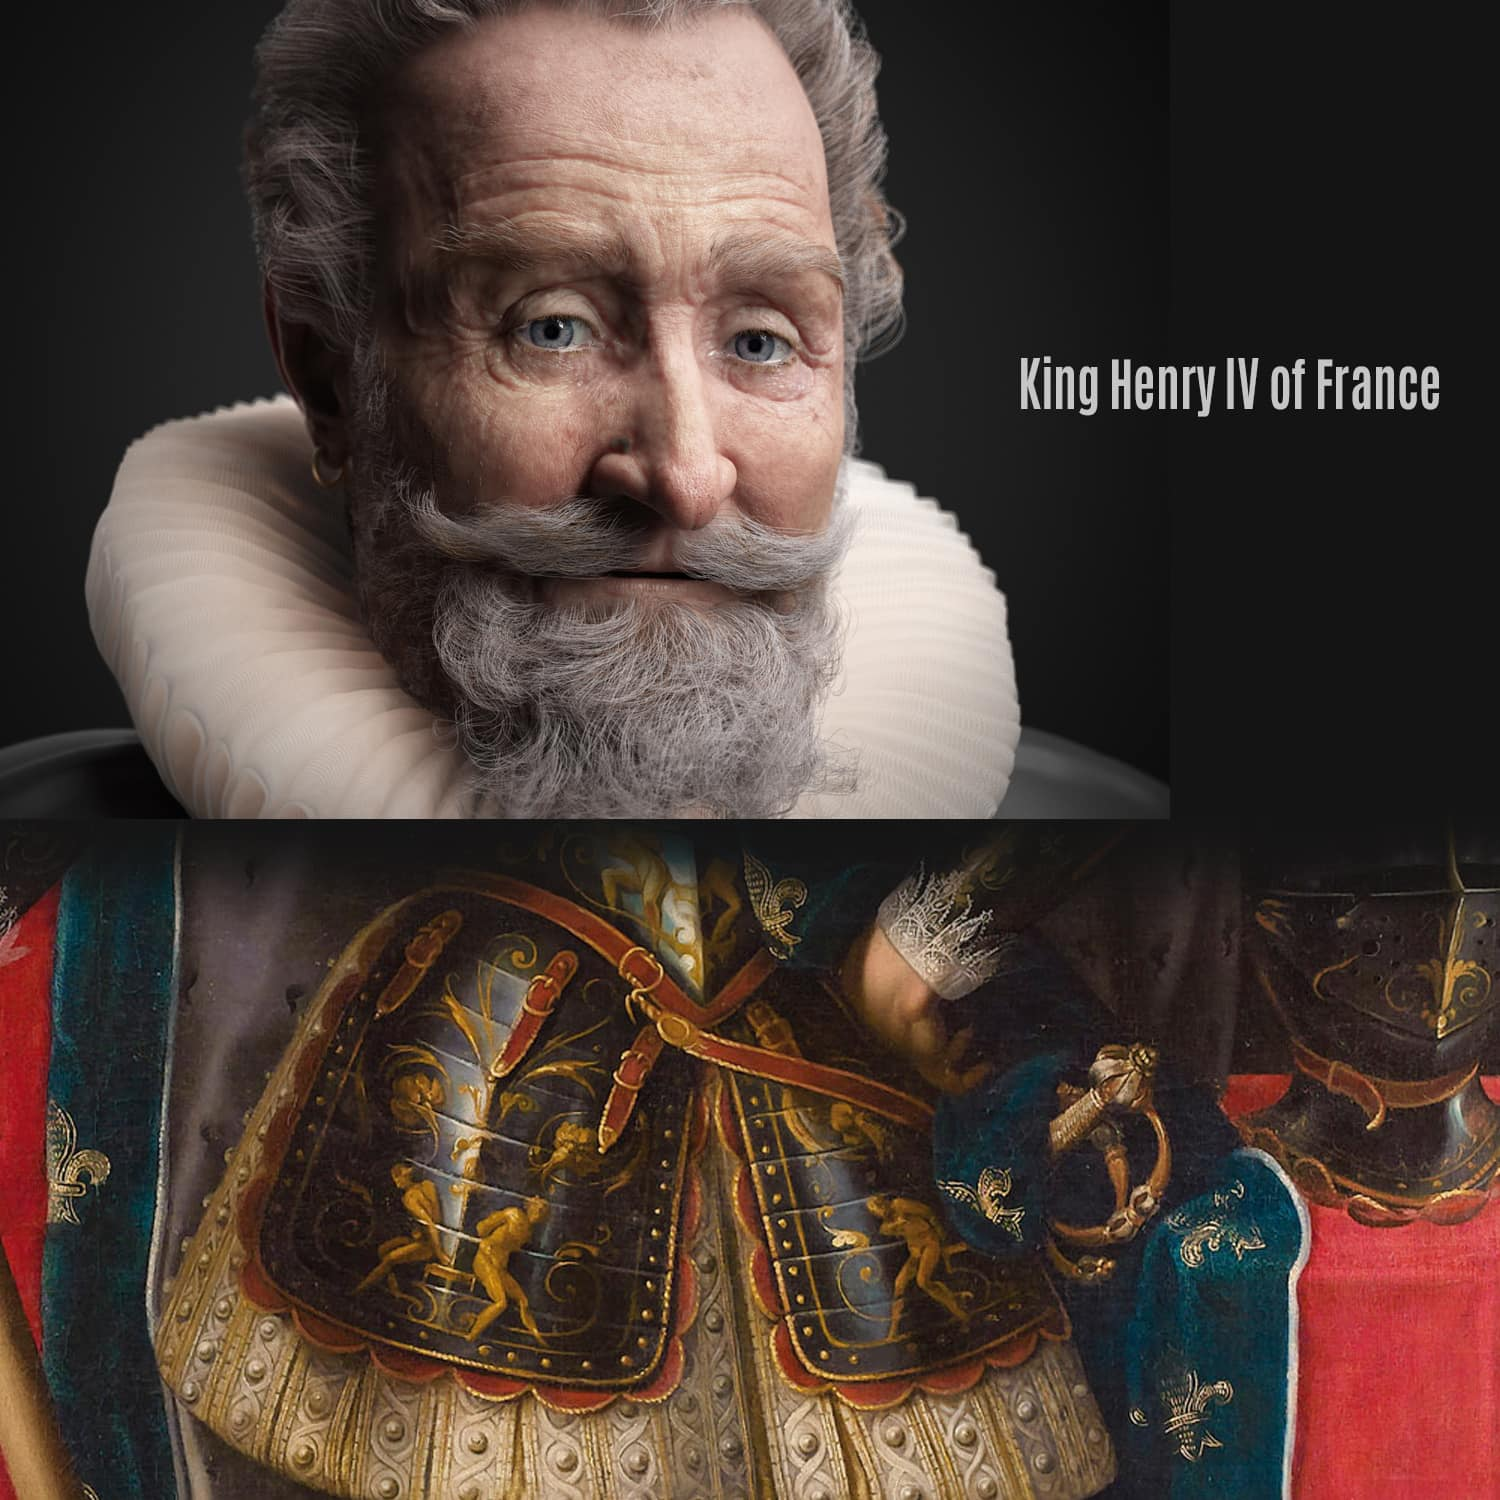 King Henry IV of France - forensic facial reconstructions 3D by VISUALFORENSIC